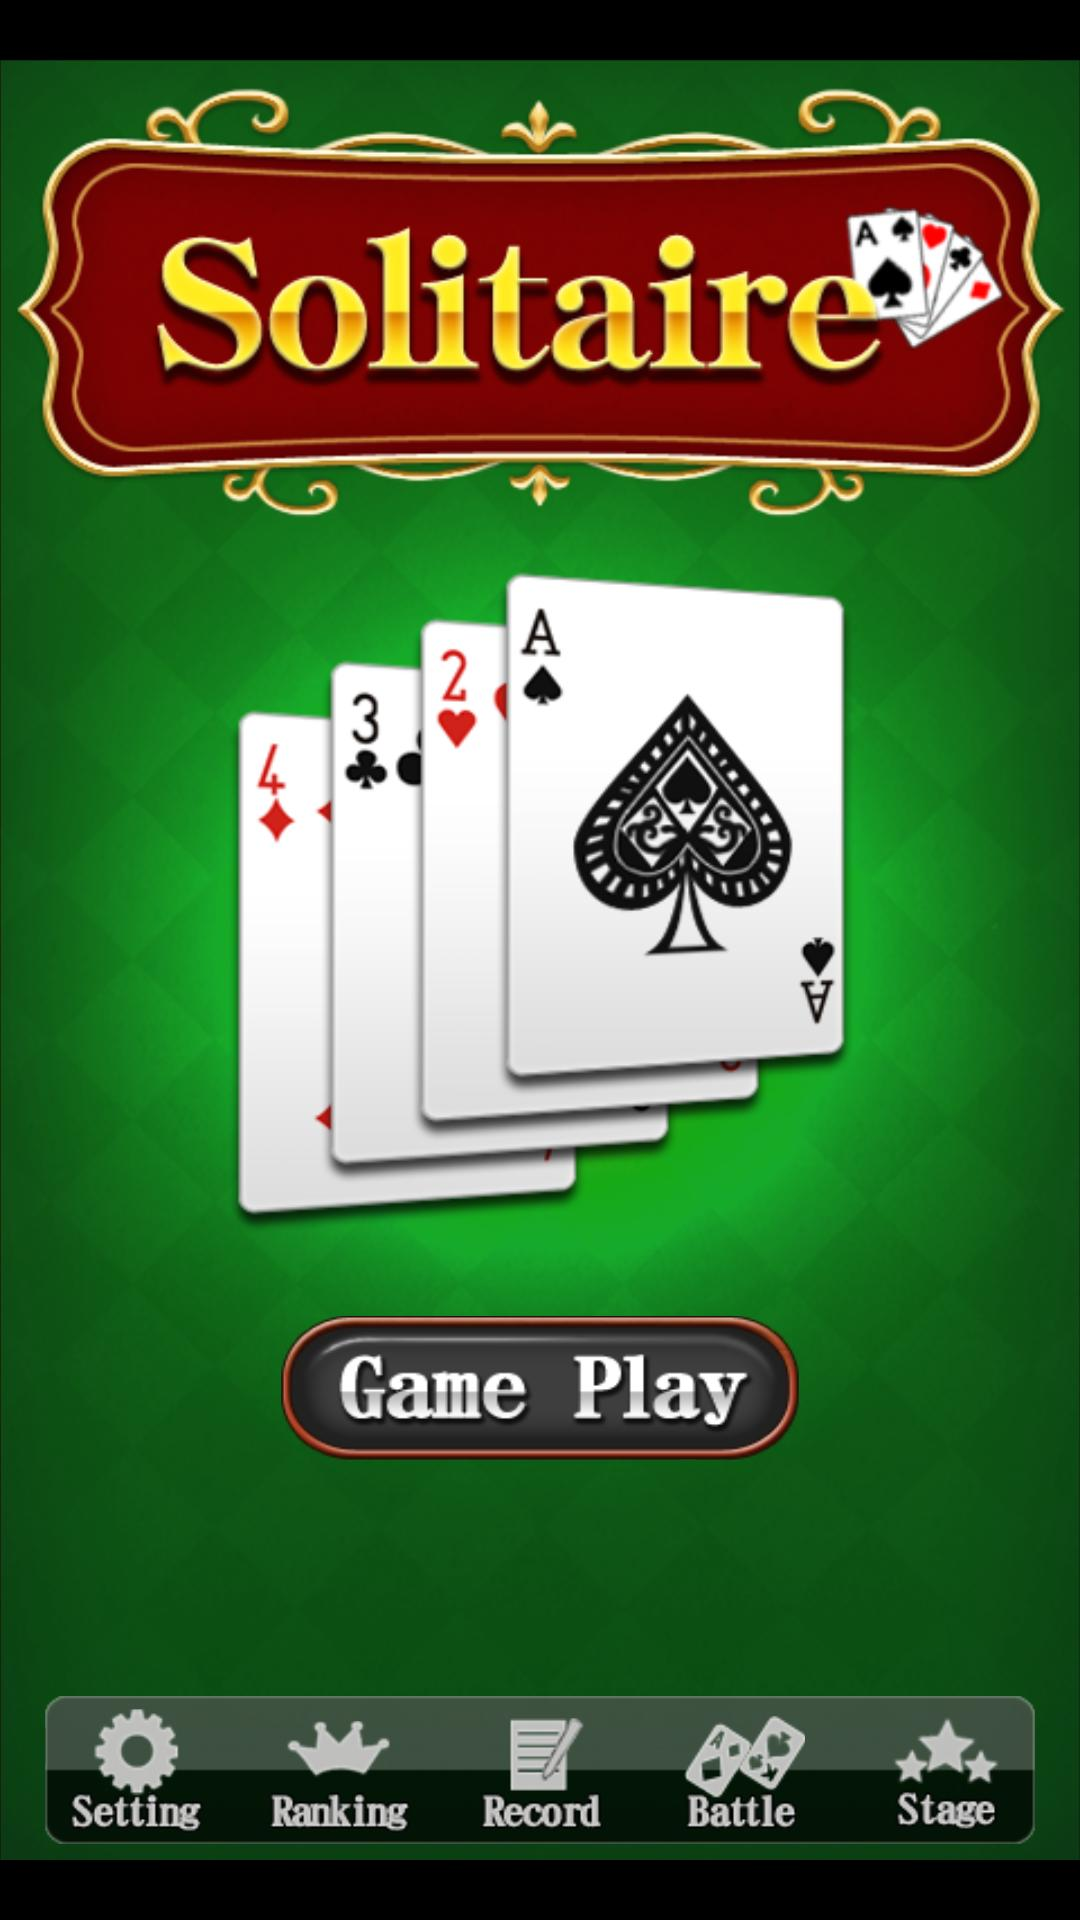 Solitaire 1.6.15 Screenshot 14